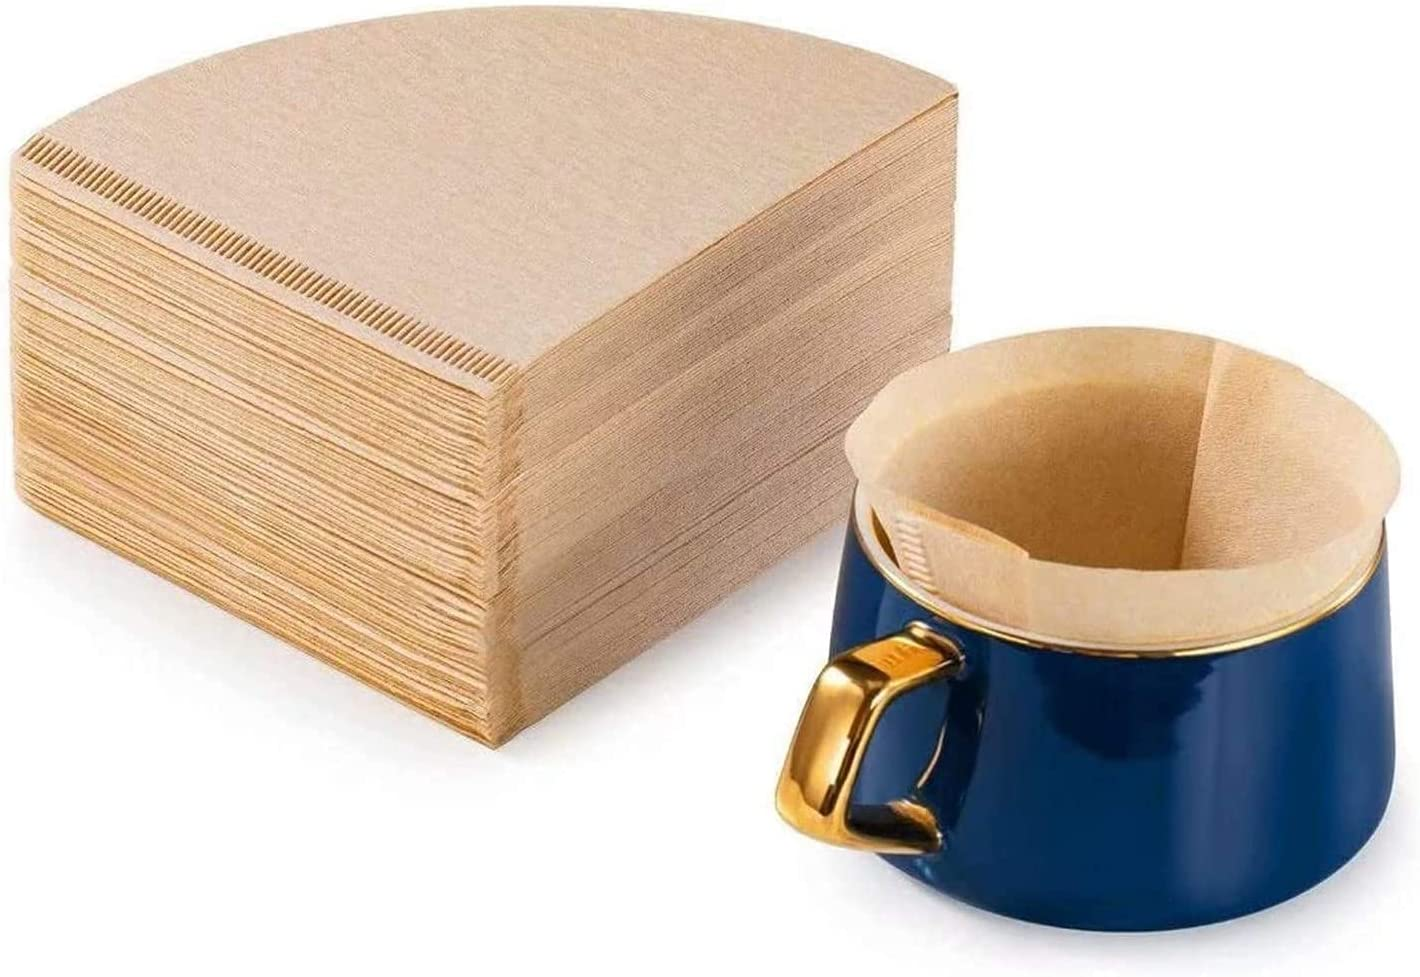 Cone specialty shop Max 85% OFF Coffee Filter Papers 100Pcs Natural Un